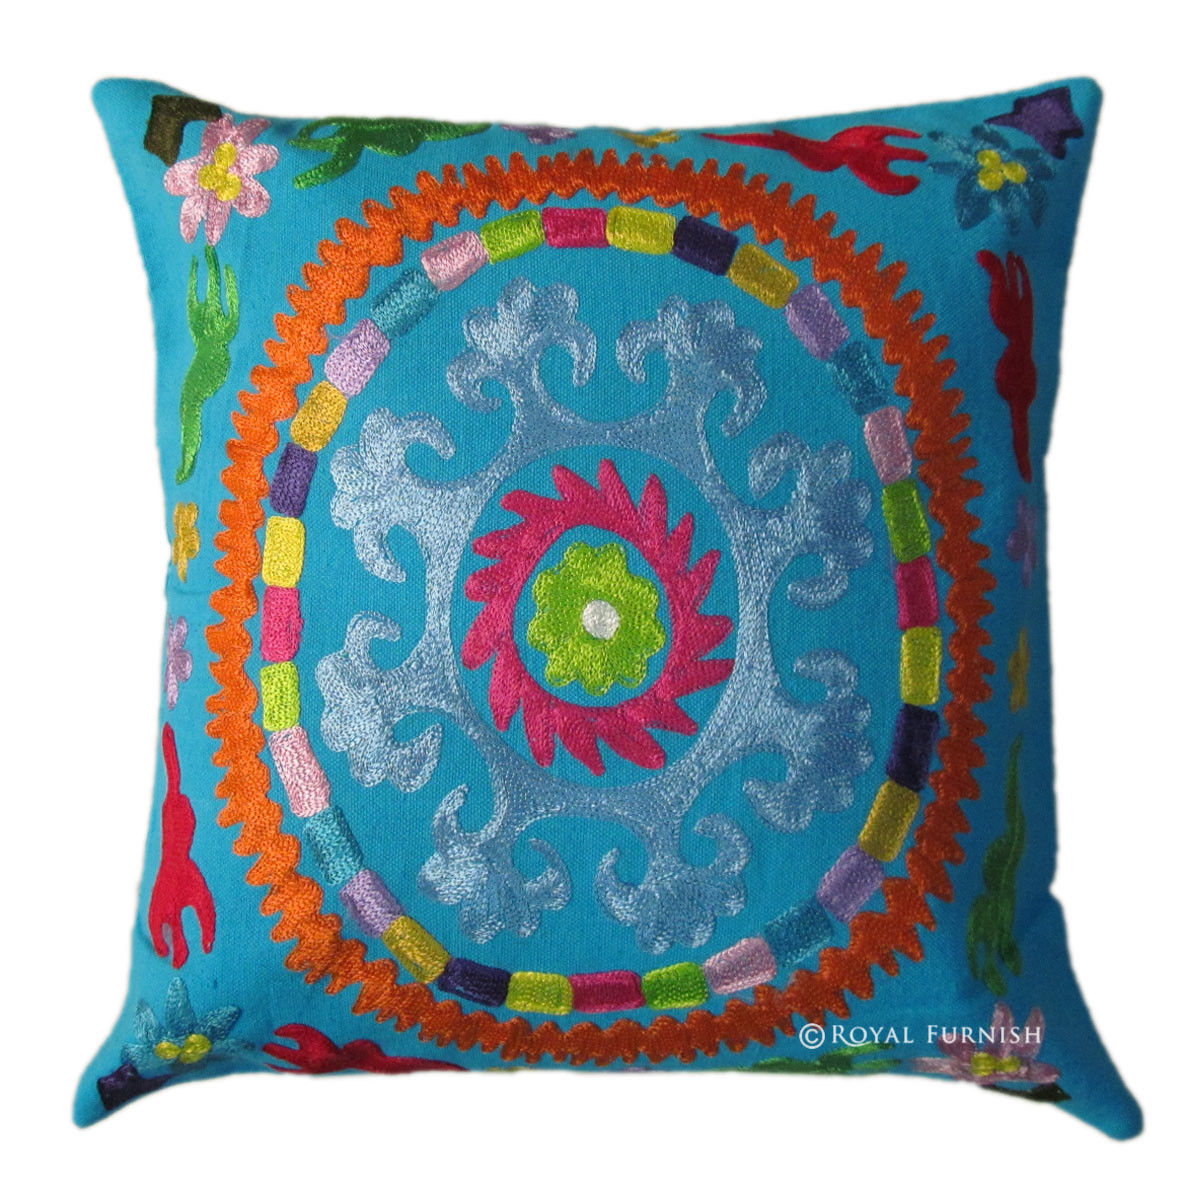 Embroidered Throw Pillow Covers : 16x16 Blue Indian Suzani Embroidered Decorative & Accent Toss Pillow Cover - RoyalFurnish.com